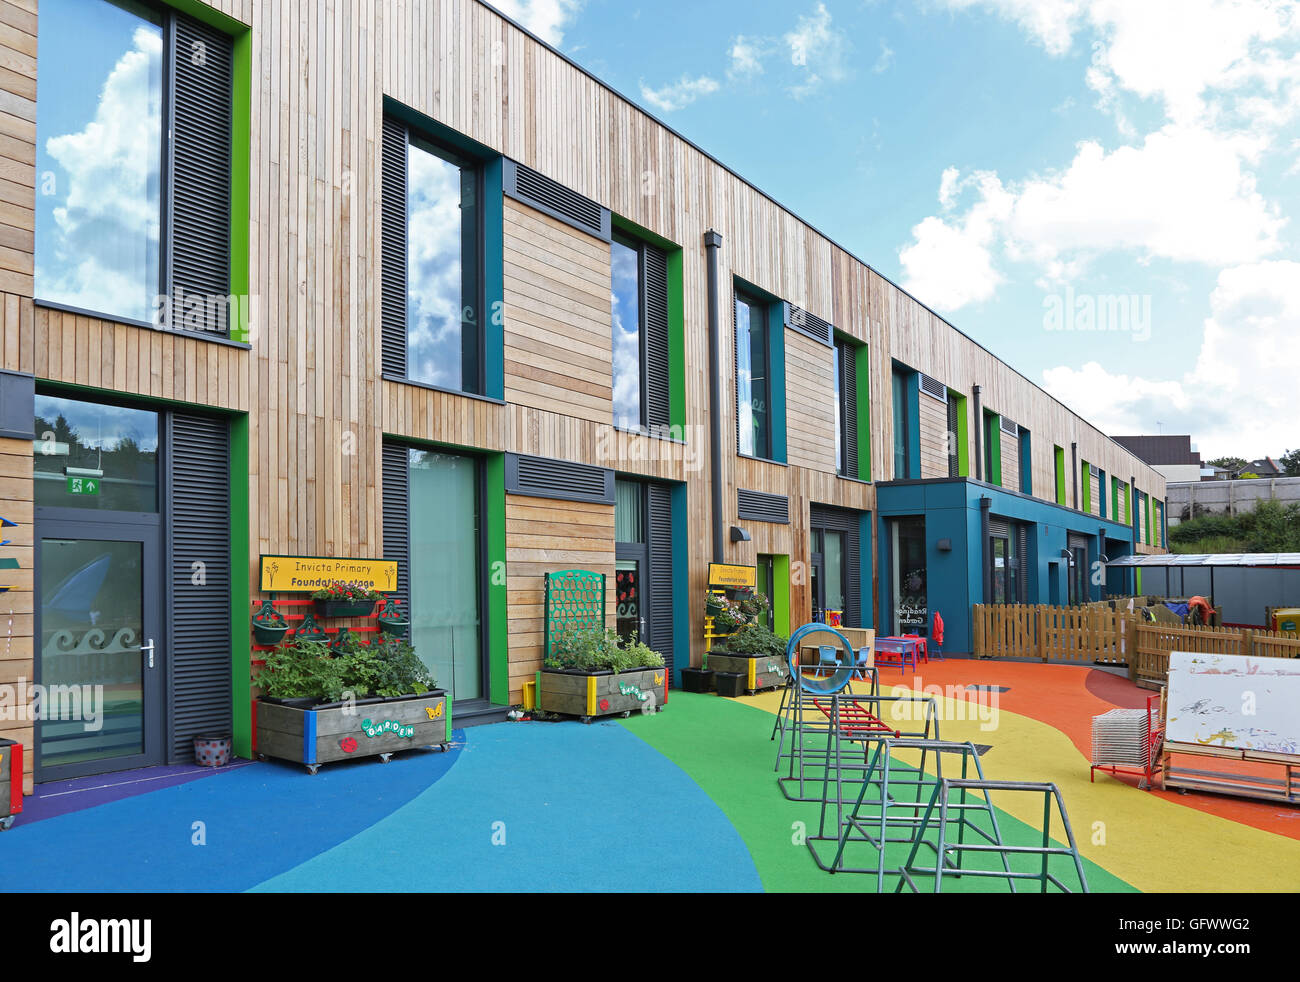 Exterior of Invicta Primary School in South London. A new timber-clad structure with  rainbow-coloured playground - Stock Image